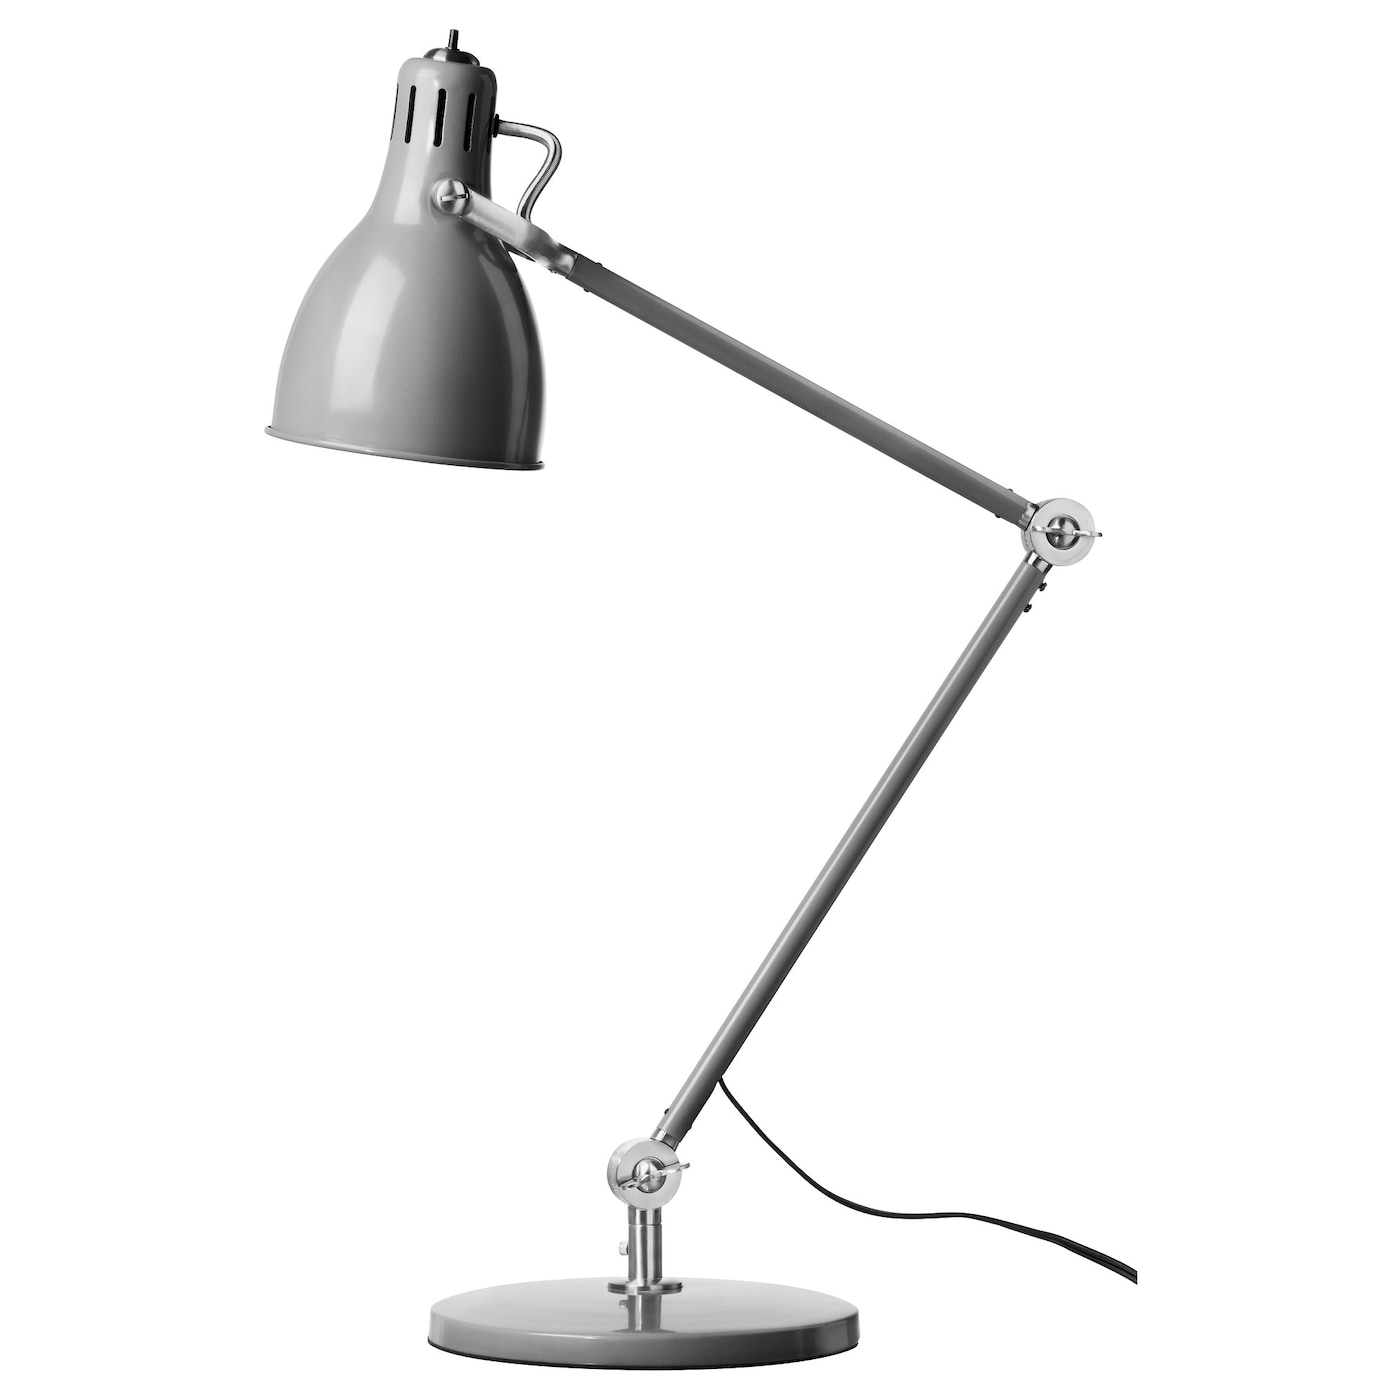 Ikea desk lamps led desk lamps worklights - Ikea halogeen ...